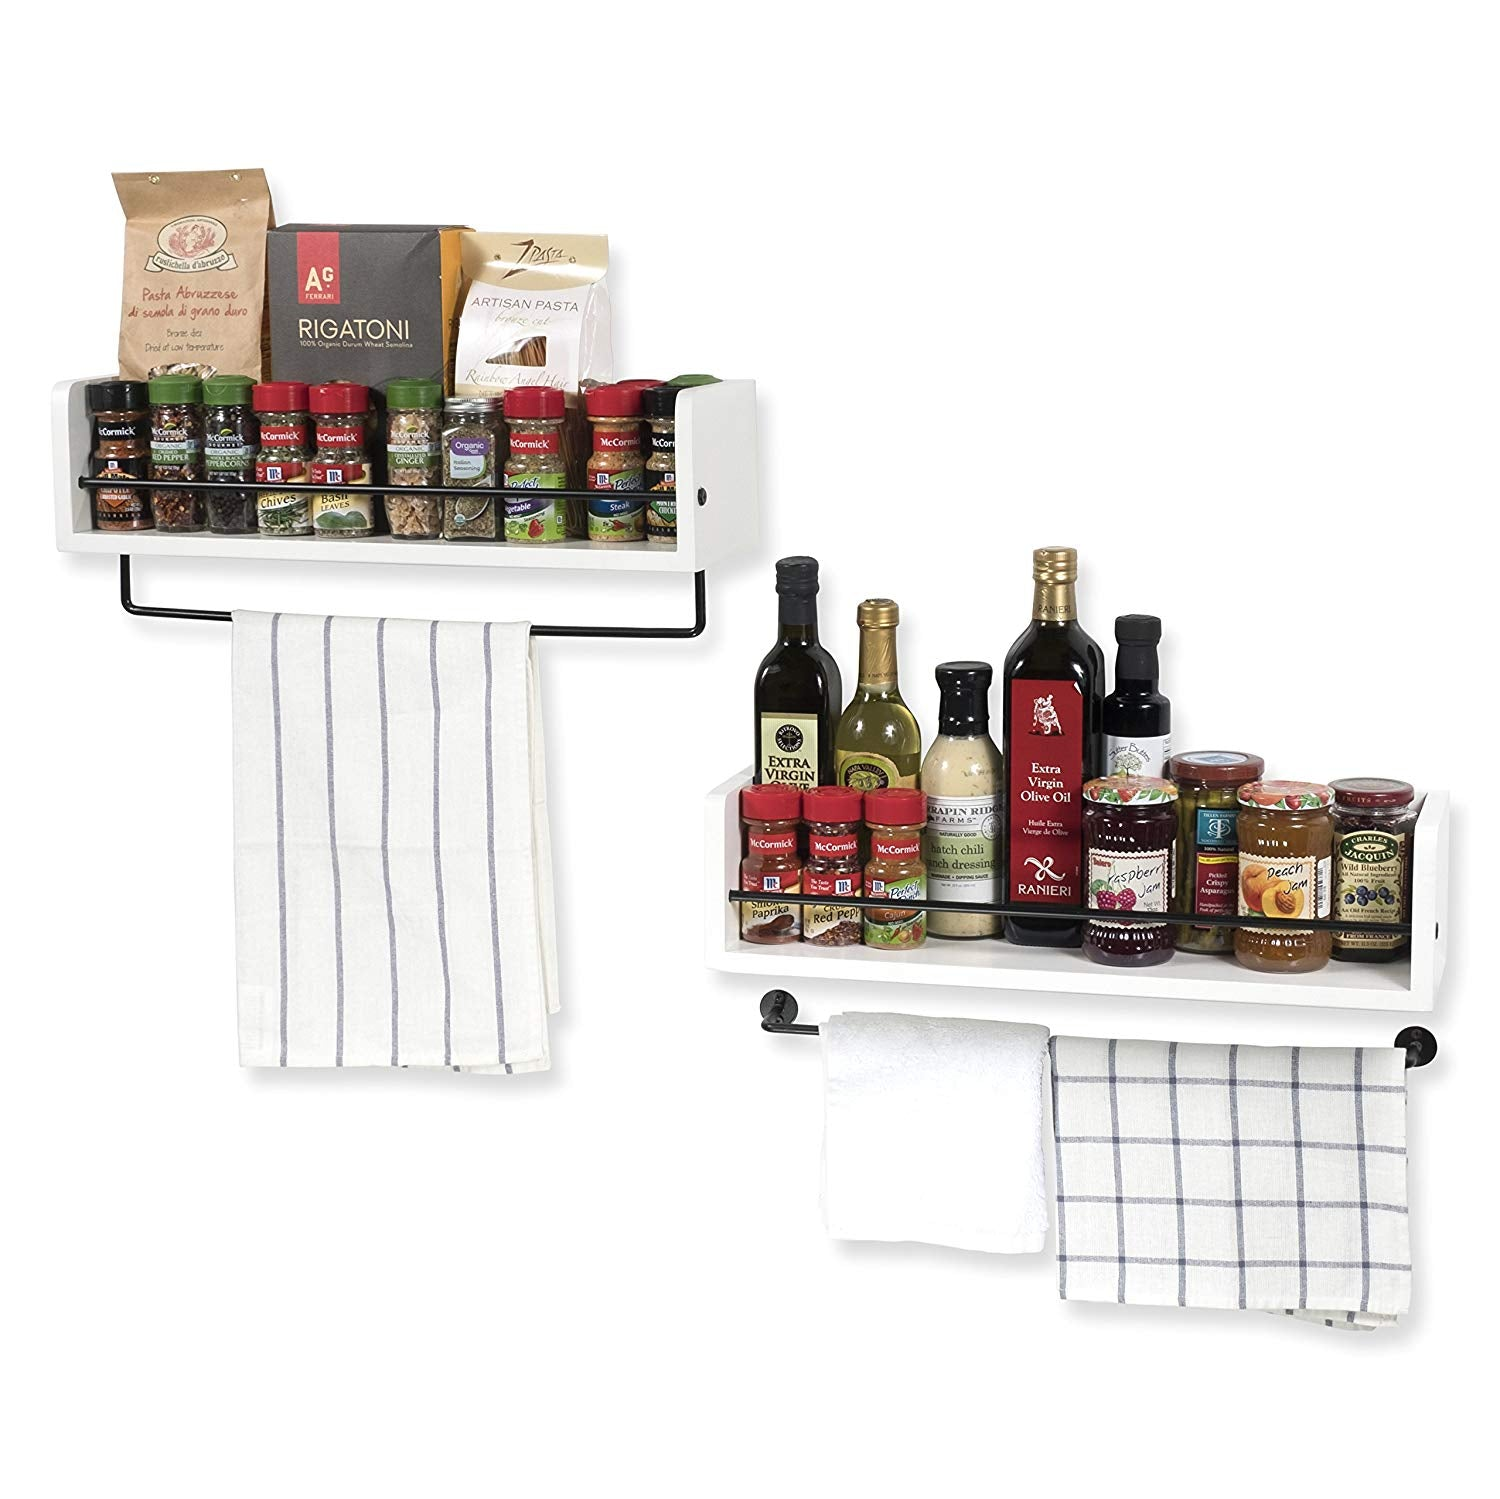 Rustic Kitchen Décor Spice Storage Rack with Towel Rail by ArtifactDesign Set of 2 White